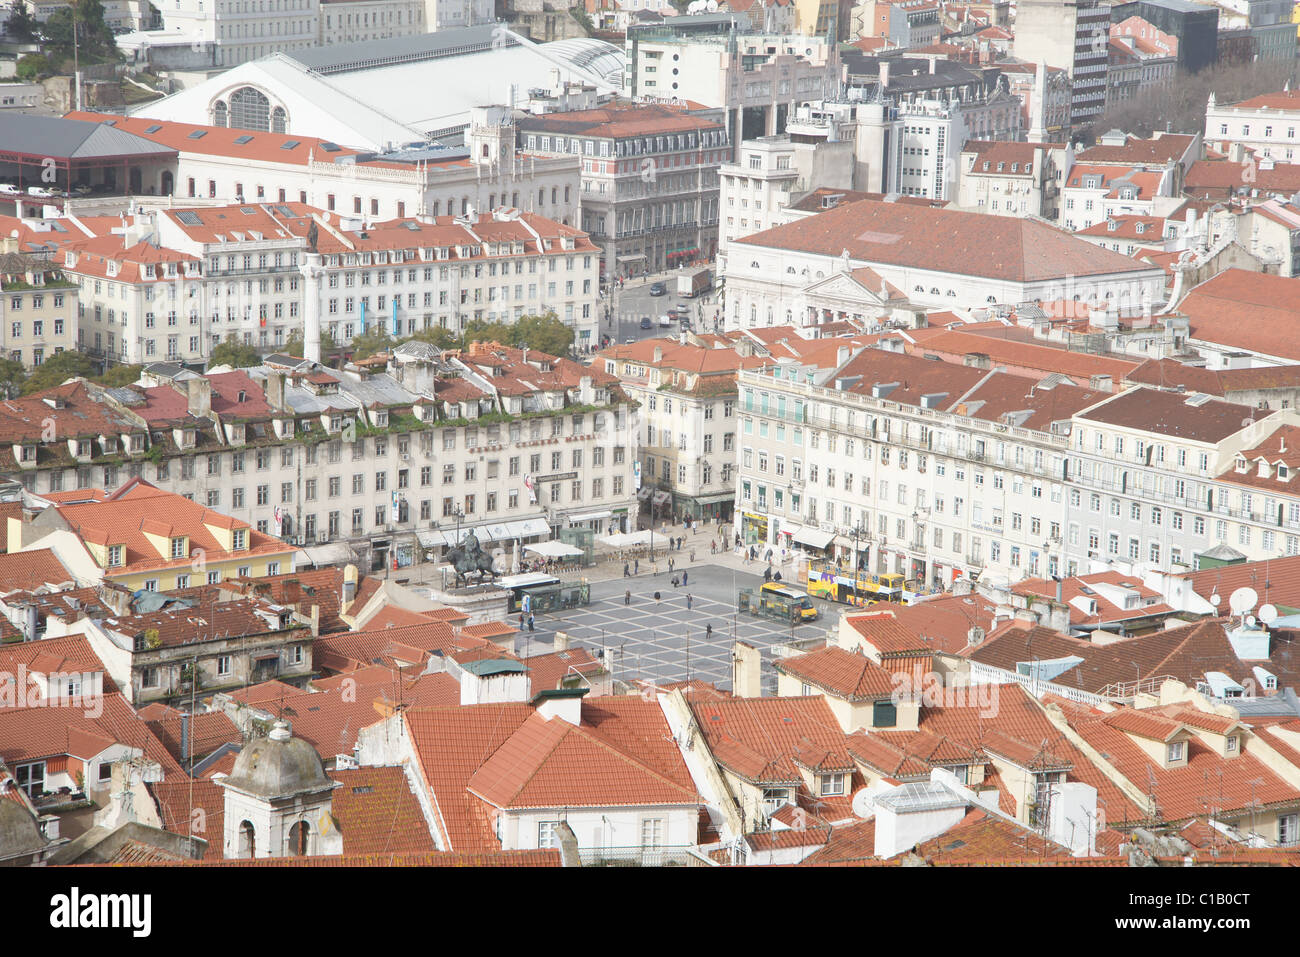 LISBON CITY CENTRE VIEWED FROM ST GEORGES CASTLE Stock Photo